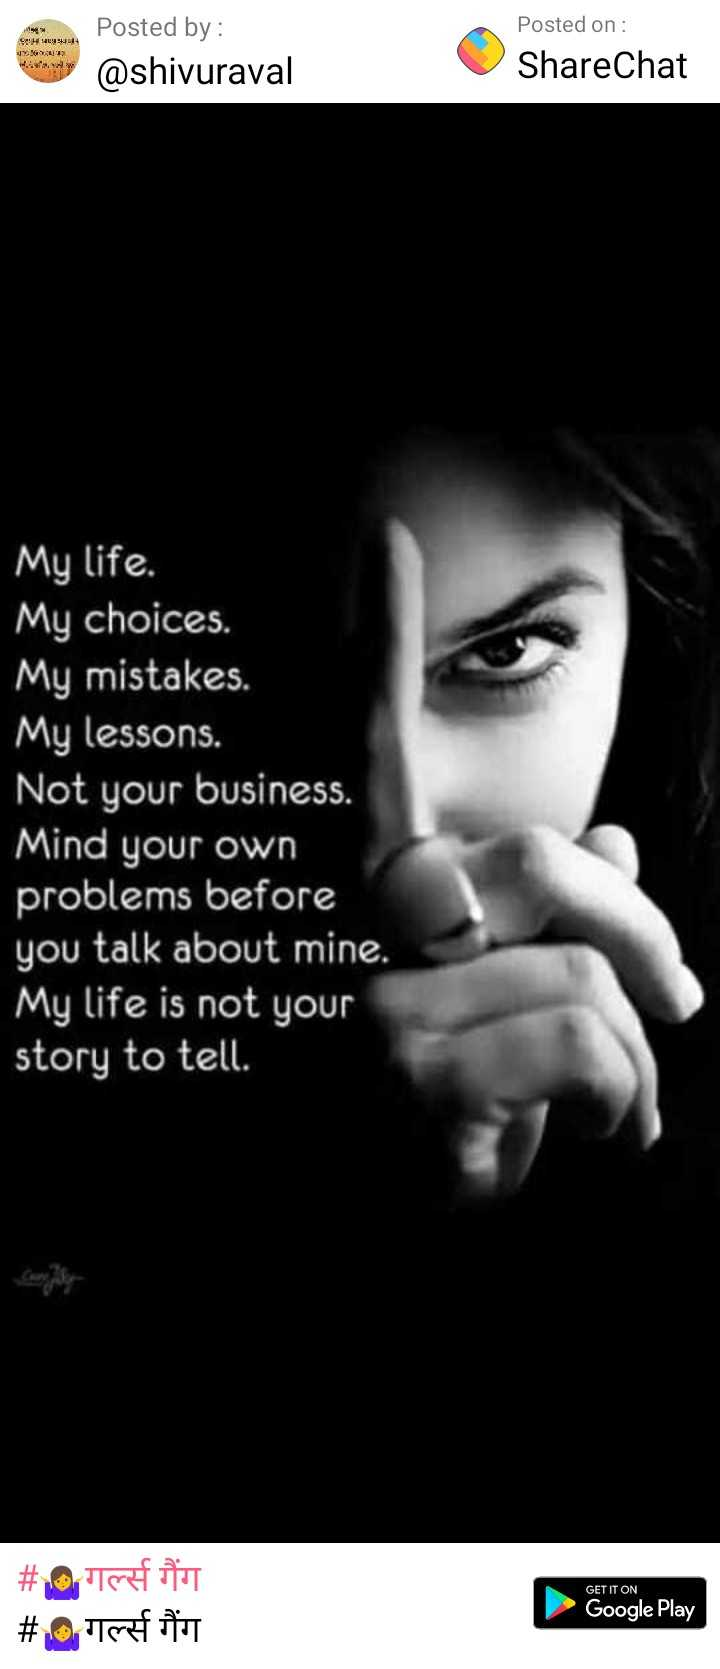 🤷‍♀️गर्ल्स गैंग - Posted on : SH y * * * 3431 * Posted by : @ shivuraval ShareChat My life . My choices . My mistakes . My lessons . Not your business . Mind your own problems before you talk about mine . My life is not your story to tell . GET IT ON # # Google Play fit - ShareChat